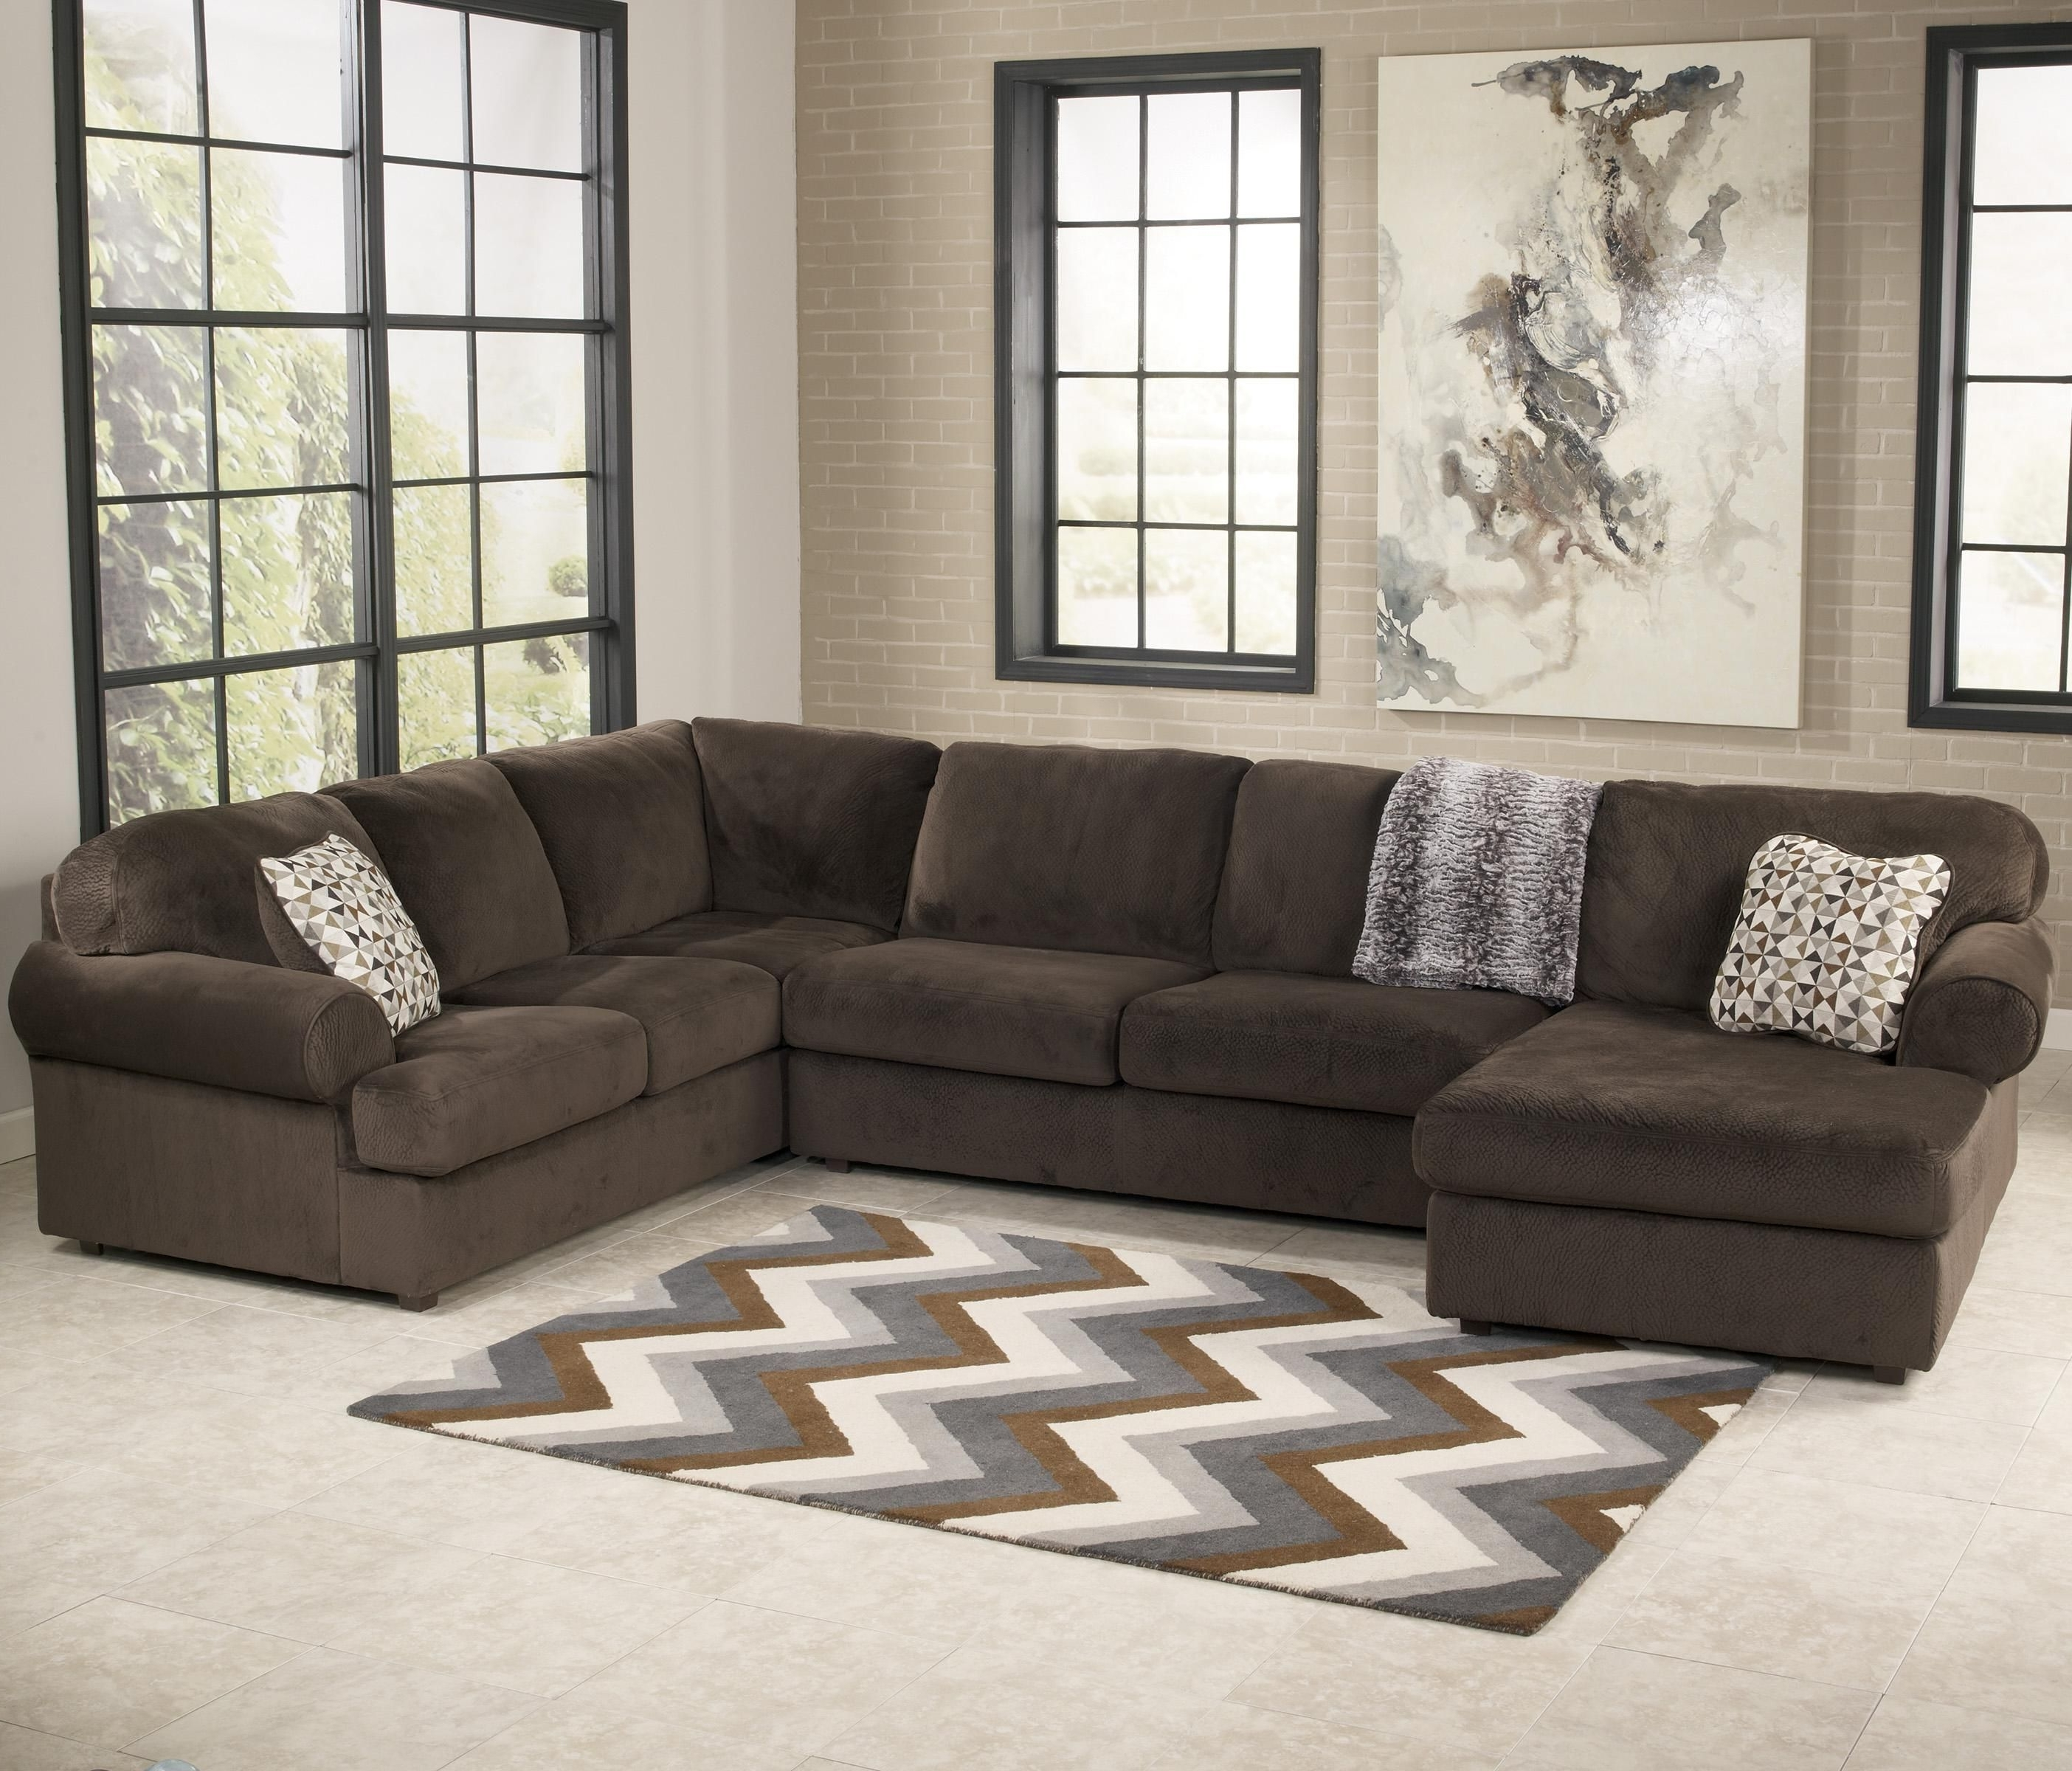 Sectional Sofas Austin Sleeper Sofa Tx Texas Leather Stock Photos Inside Famous Sectional Sofas At Austin (View 14 of 15)